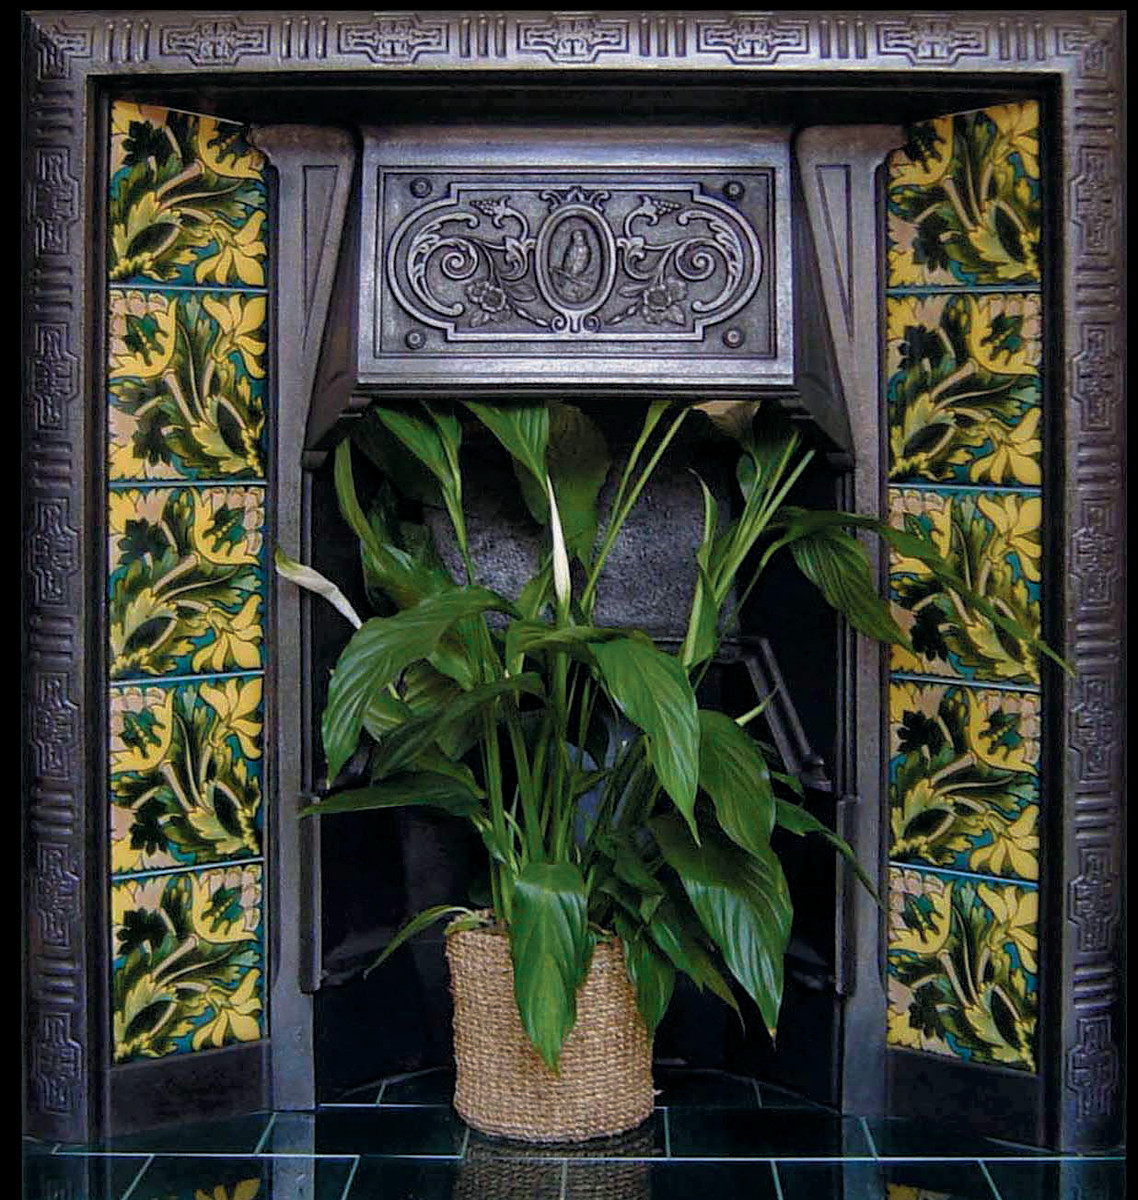 Floral Aesthetic fireplace tiles from Tile Source dress the legs of a coal grate-style surround.